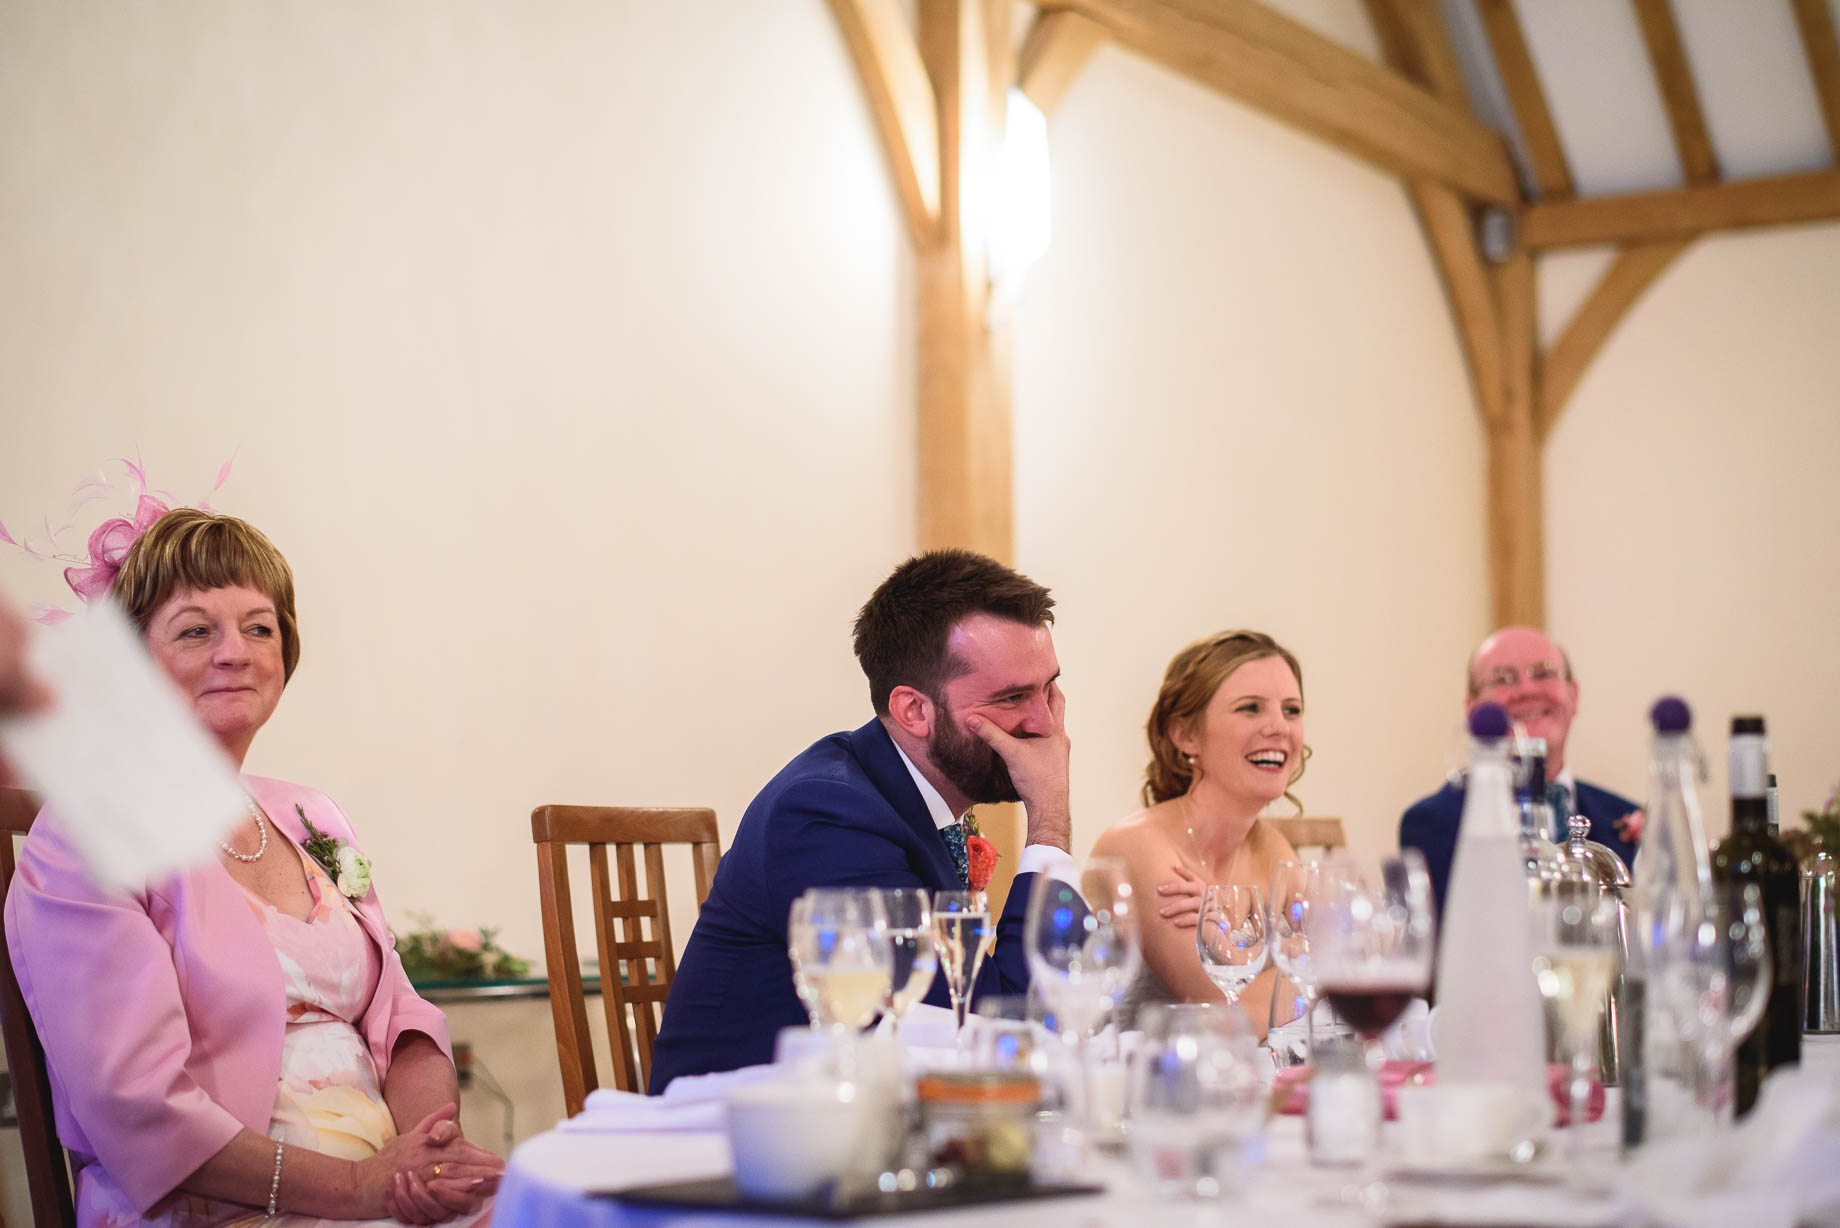 Rivervale Barn wedding photography by Guy Collier - Claire and Simon (124 of 133)